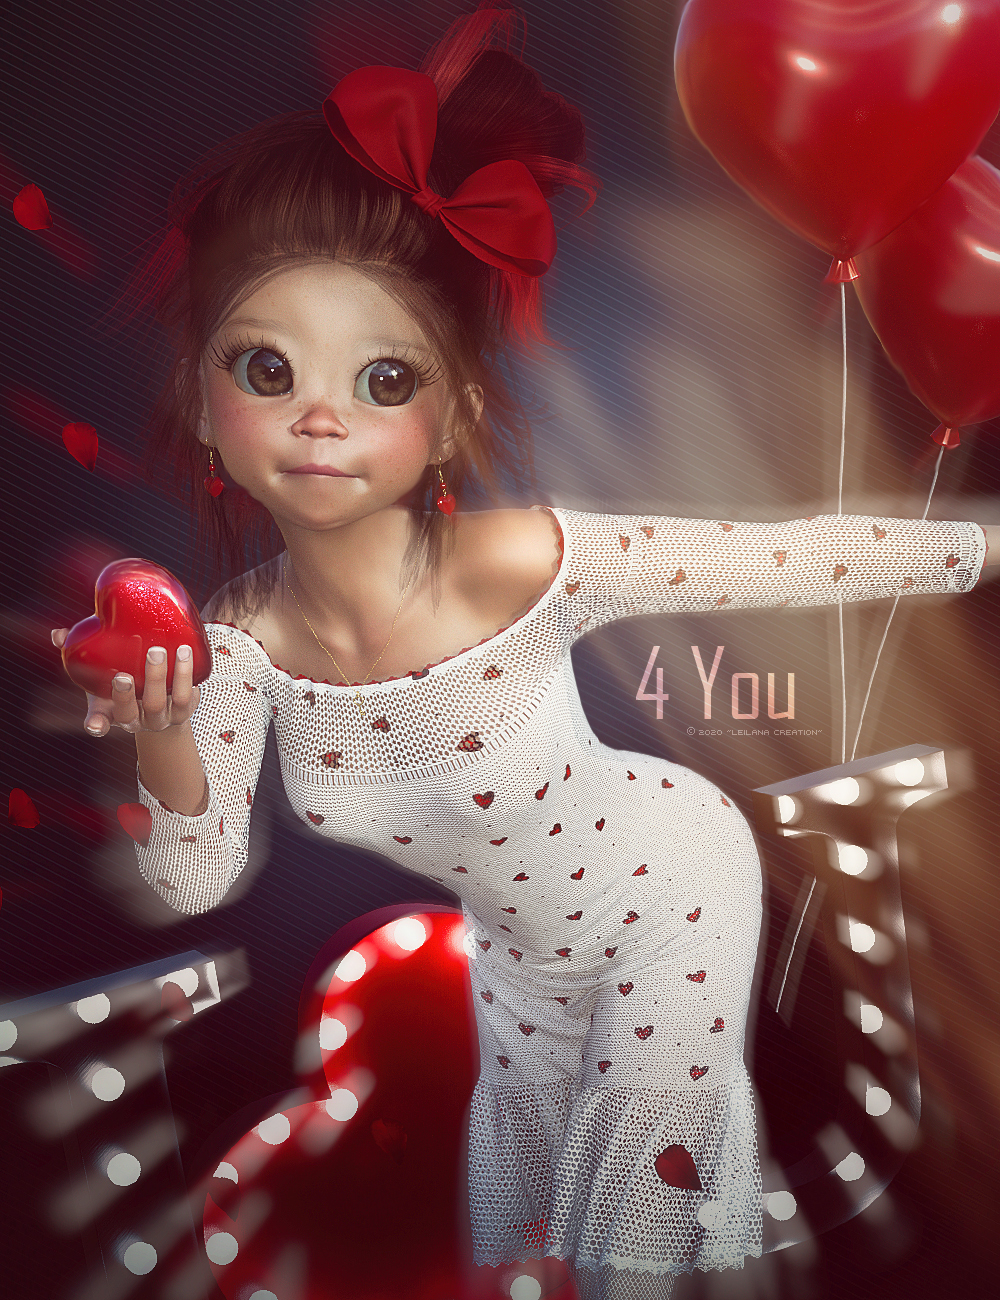 ~*4 You*~ by Leilana